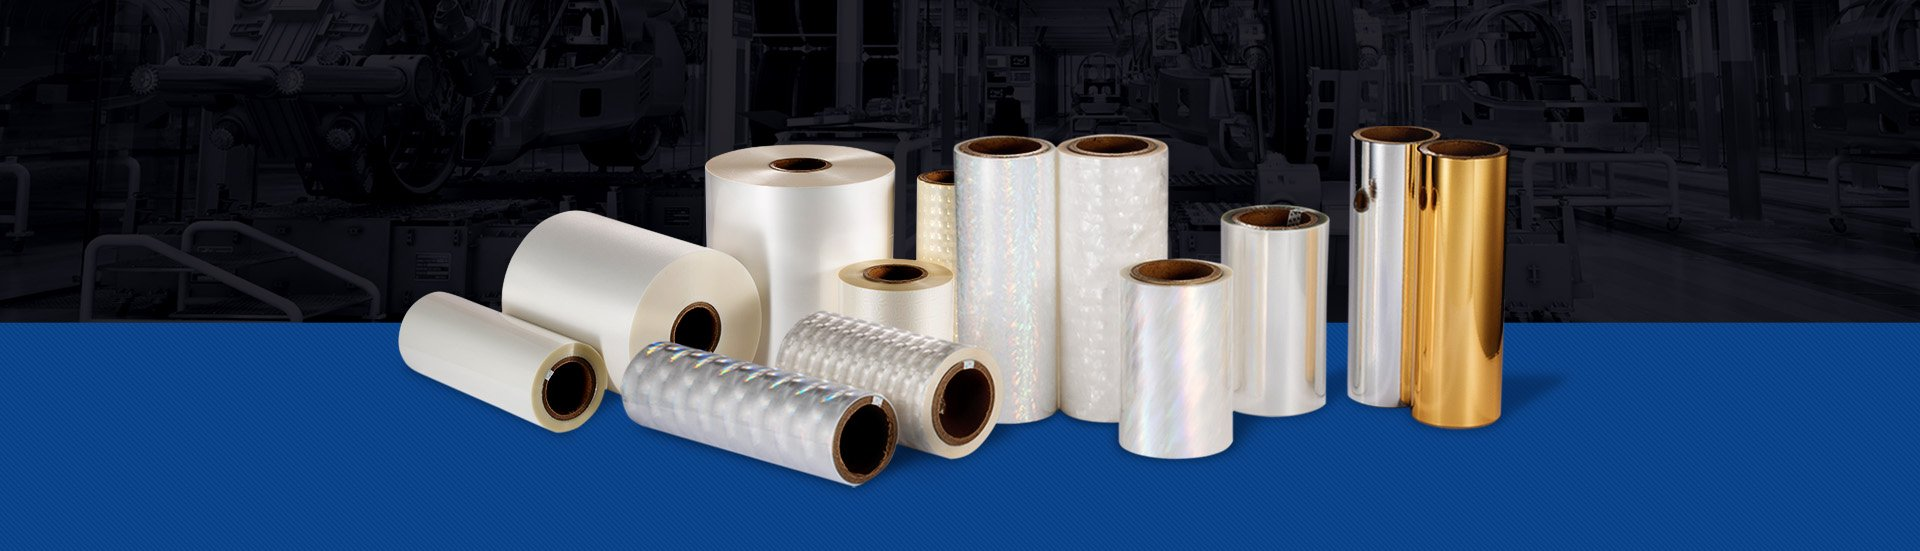 thermal lamination film-thermal laminator-bopp lamination film suppliers-FSEKO